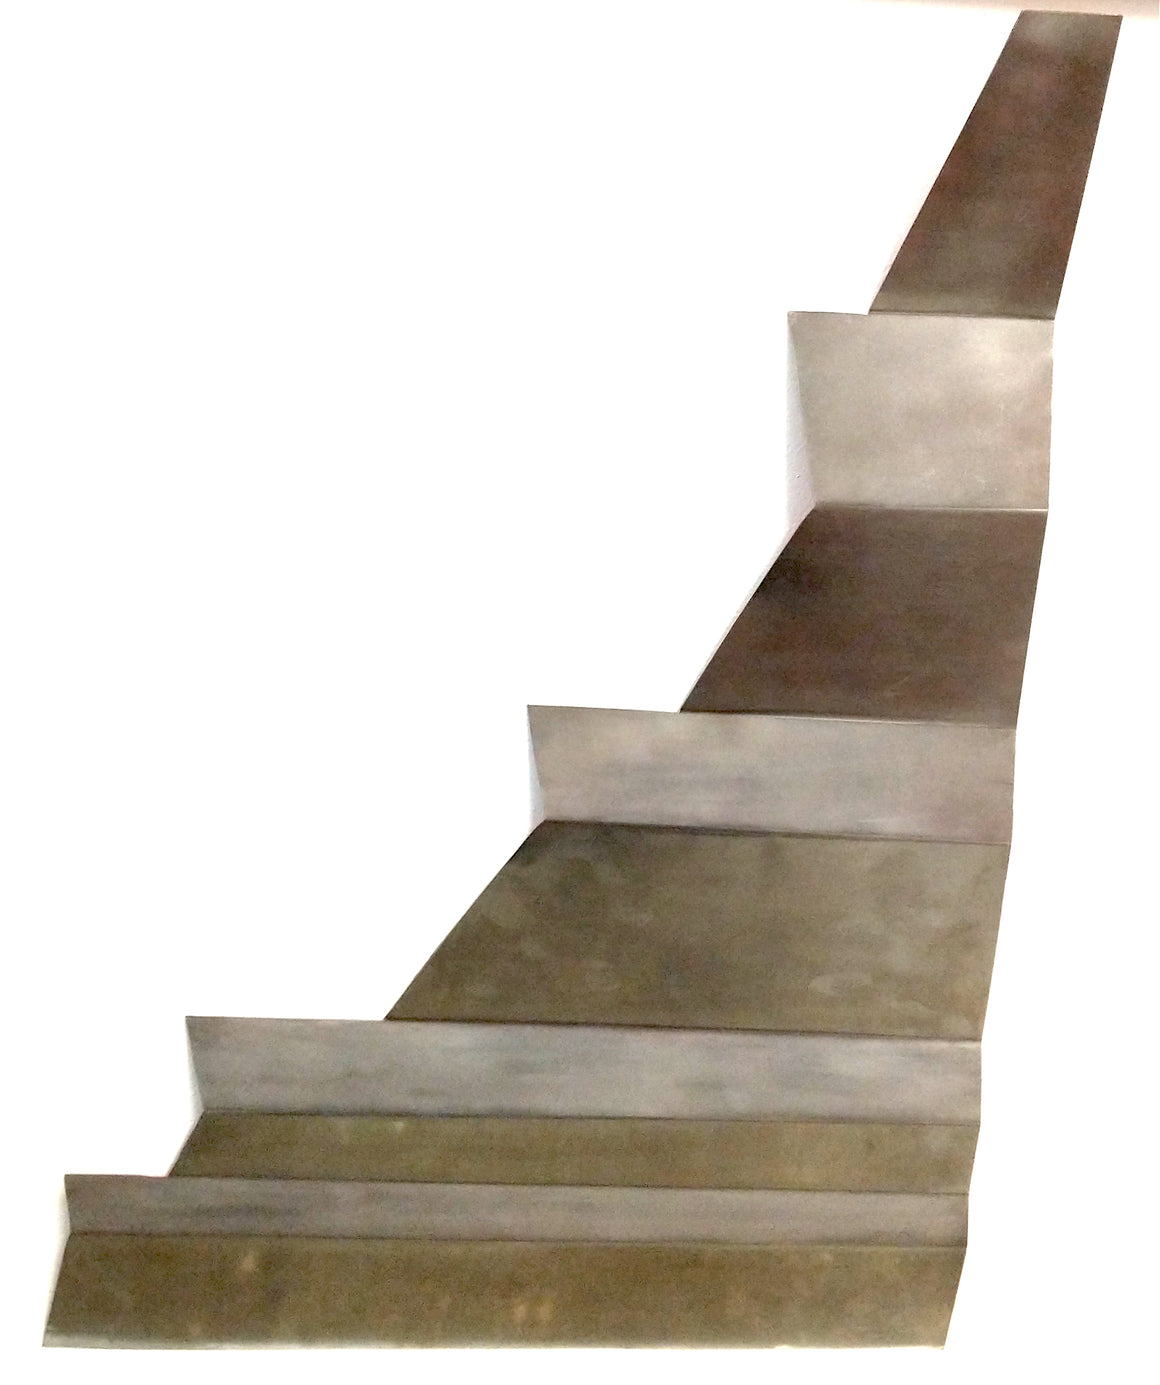 Fibonacci Sequence Stainless steel sculpture